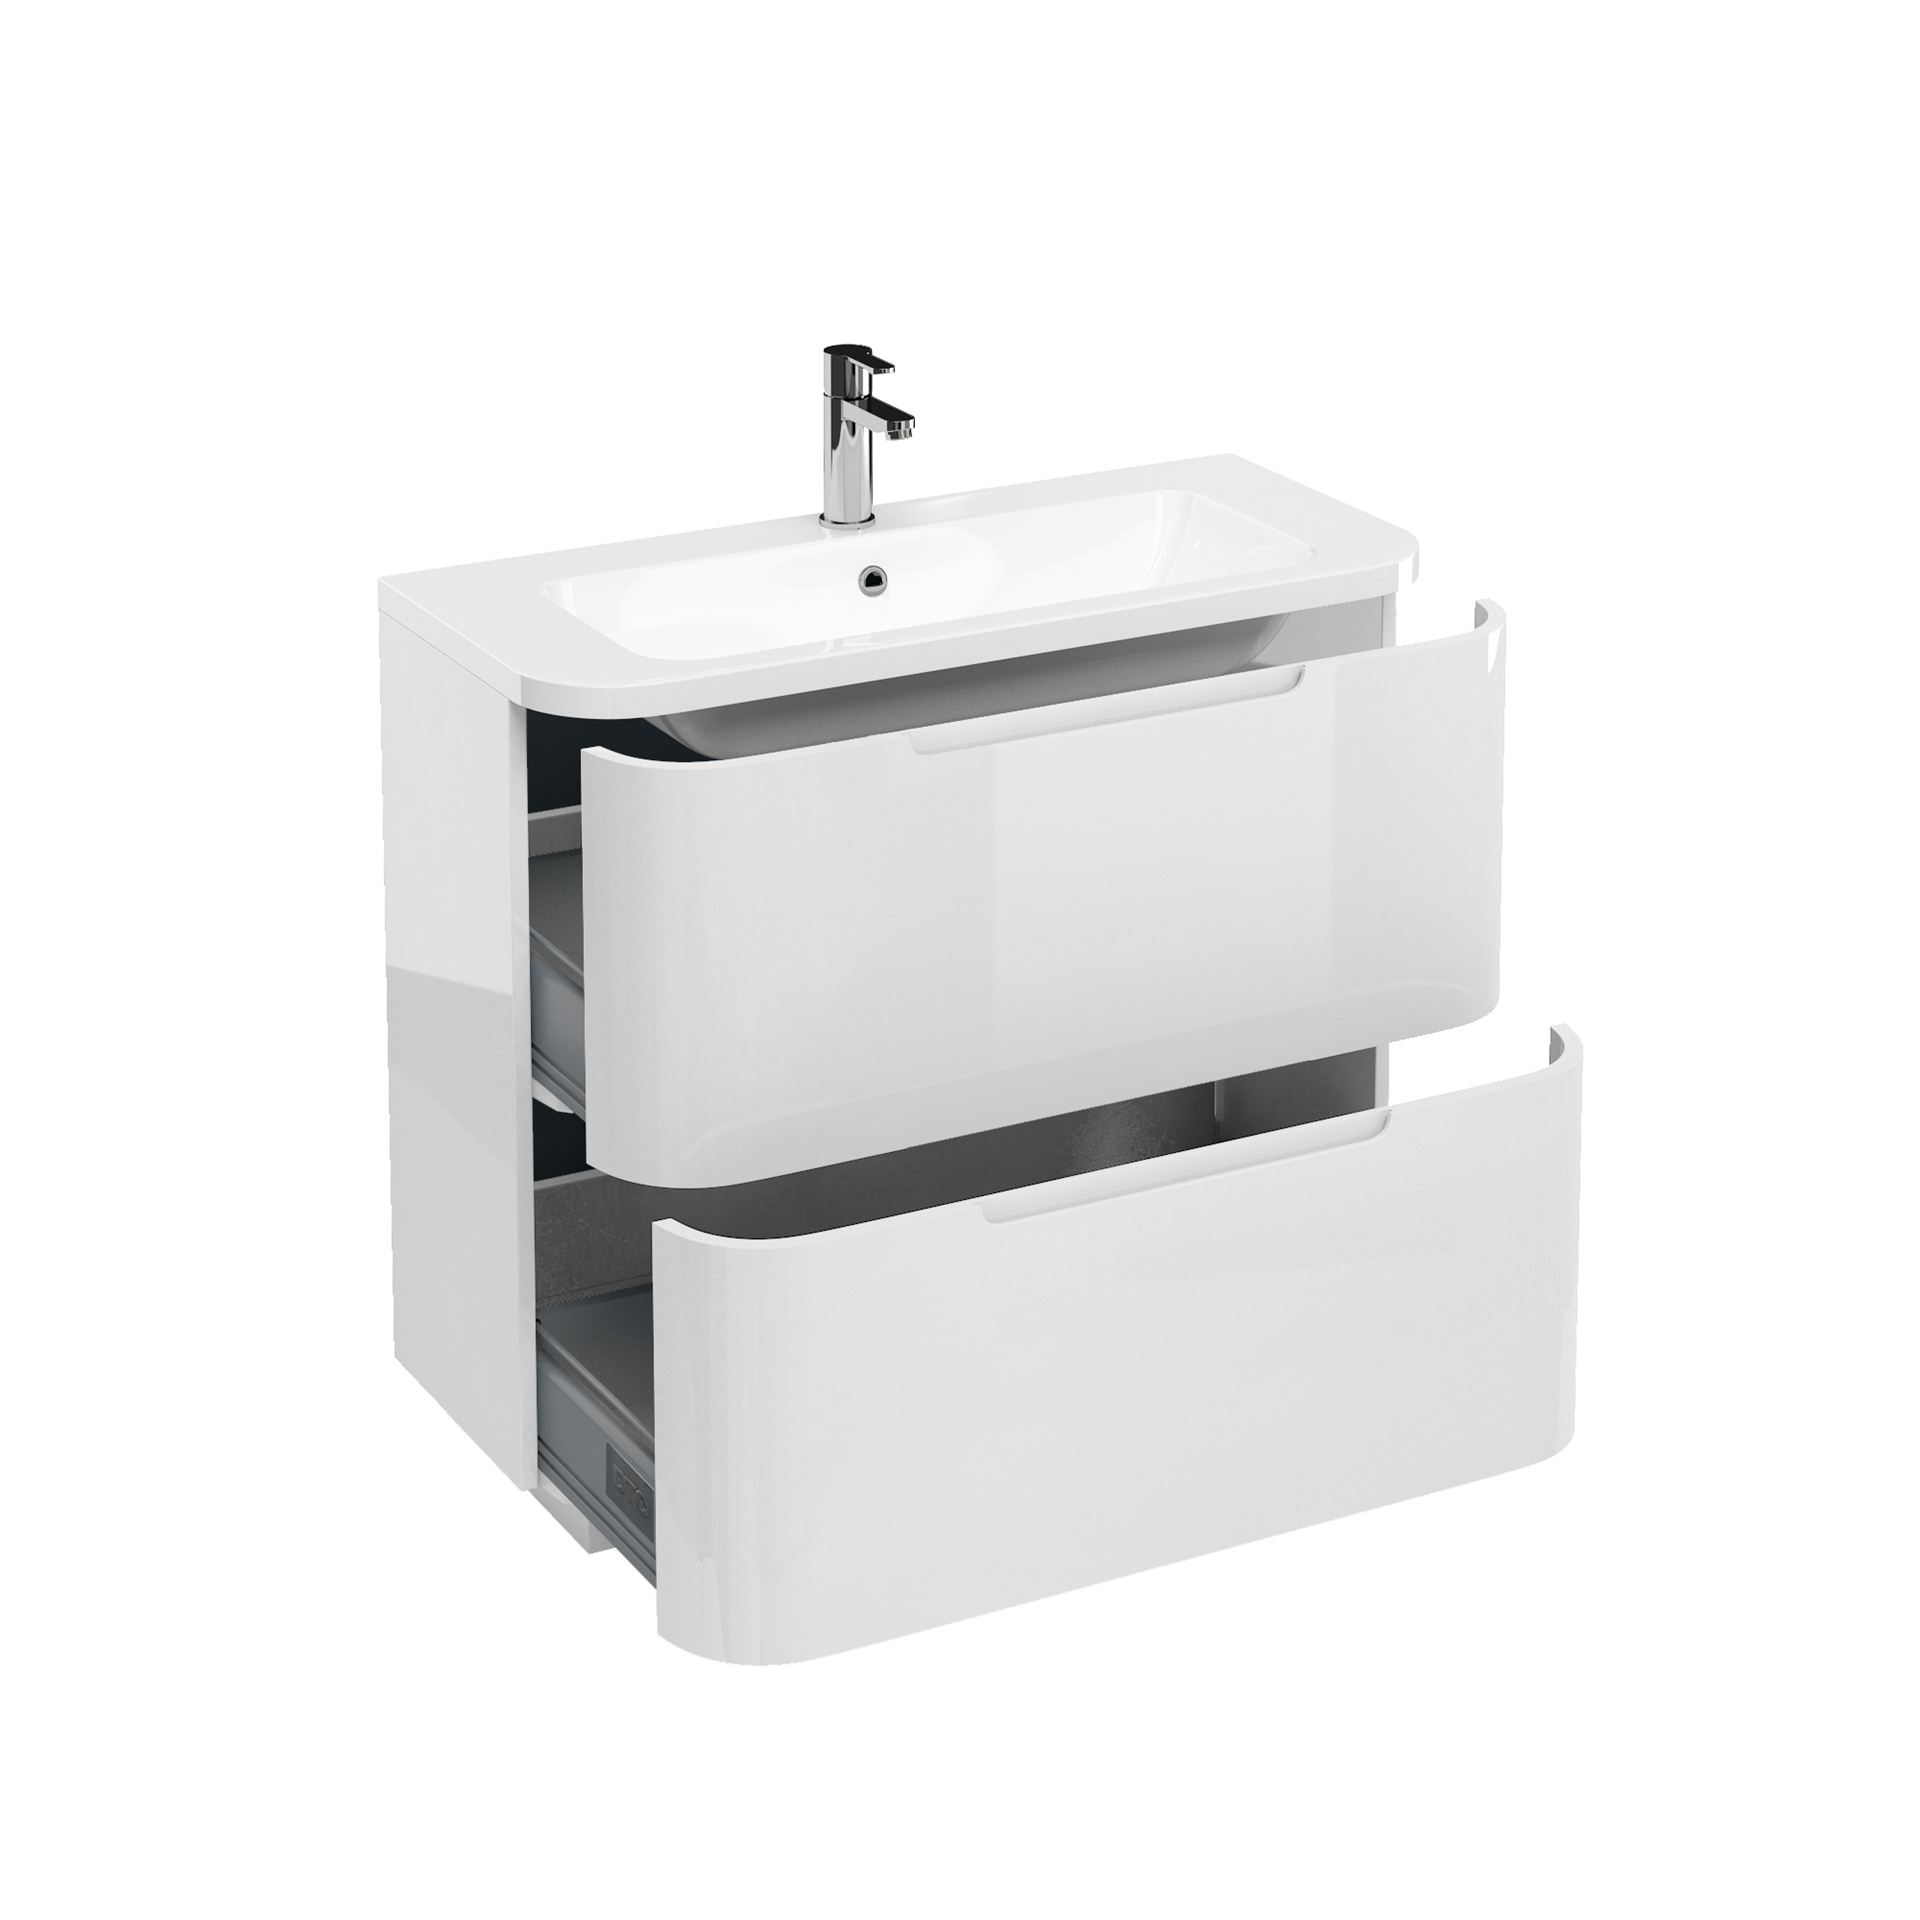 Bunnings Bathroom Vanity 900mm Vanity Units Globorank